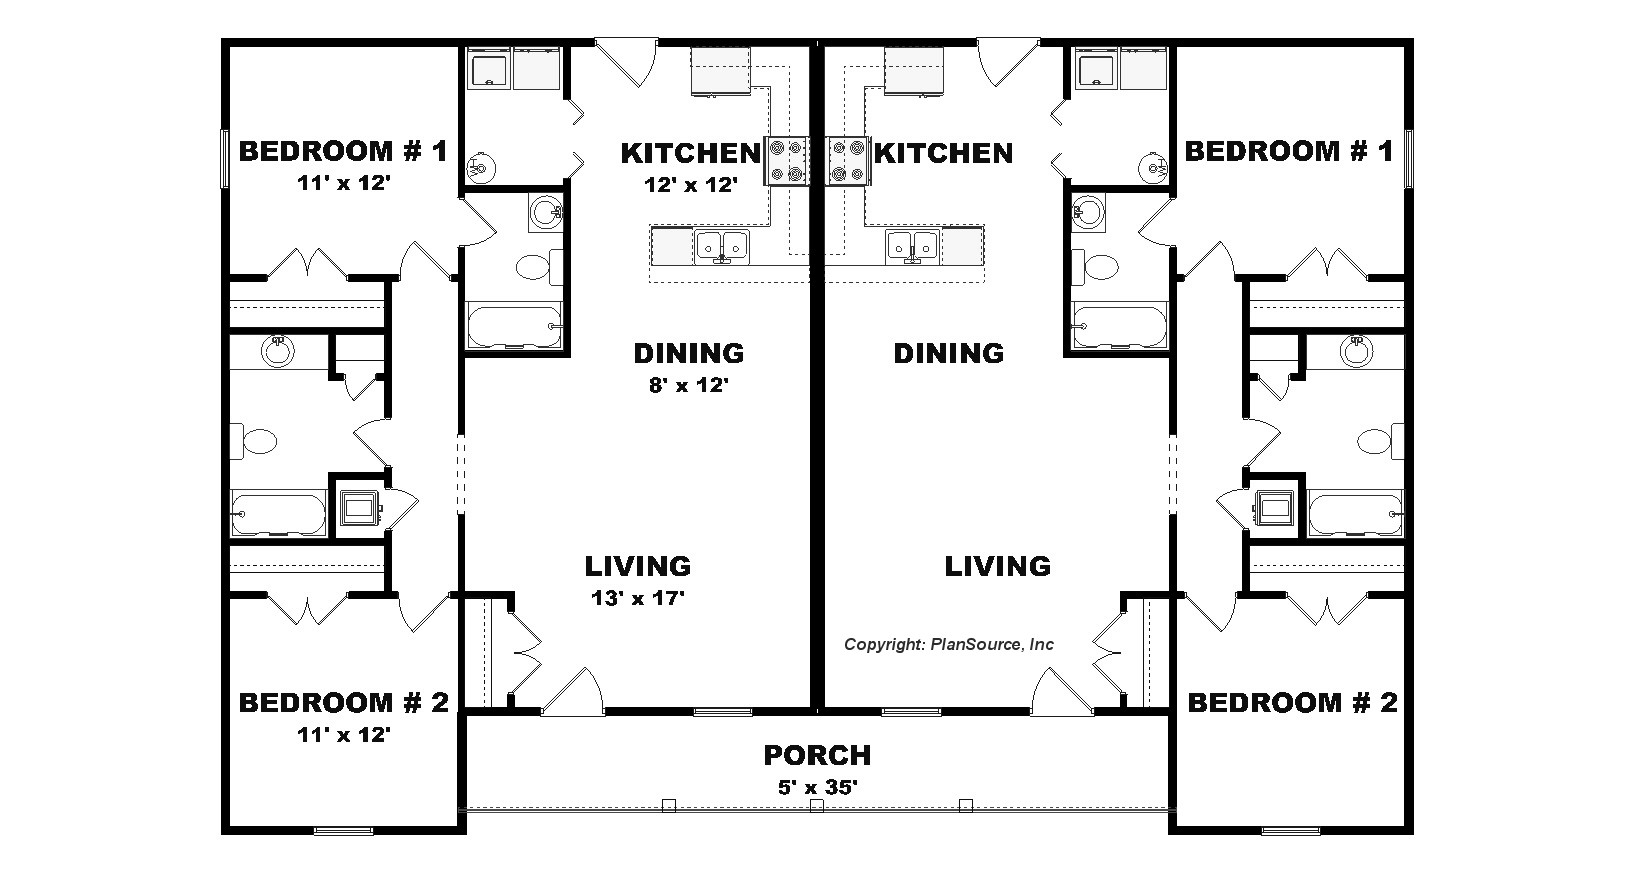 Apartment Plans 4 Plex House Plans: 4 floor apartment plan